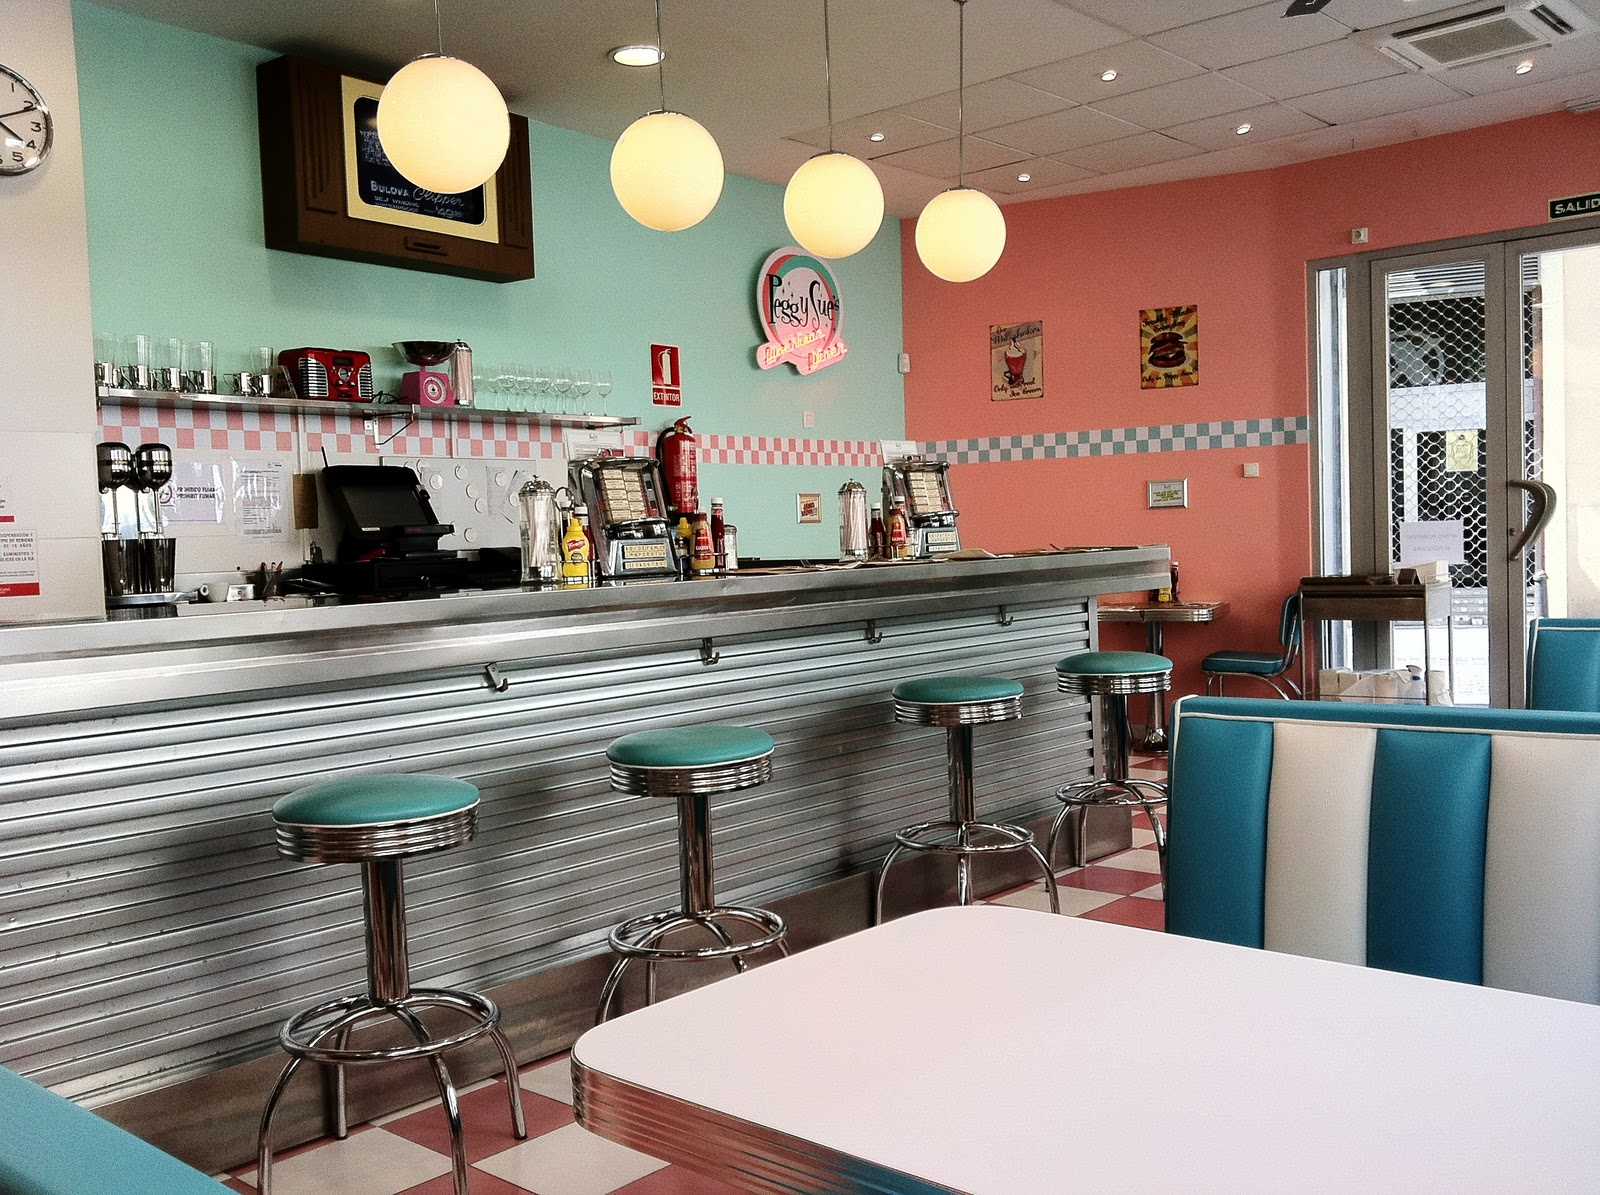 50's American diner on Pinterest | Diners, 50s Diner and Retro